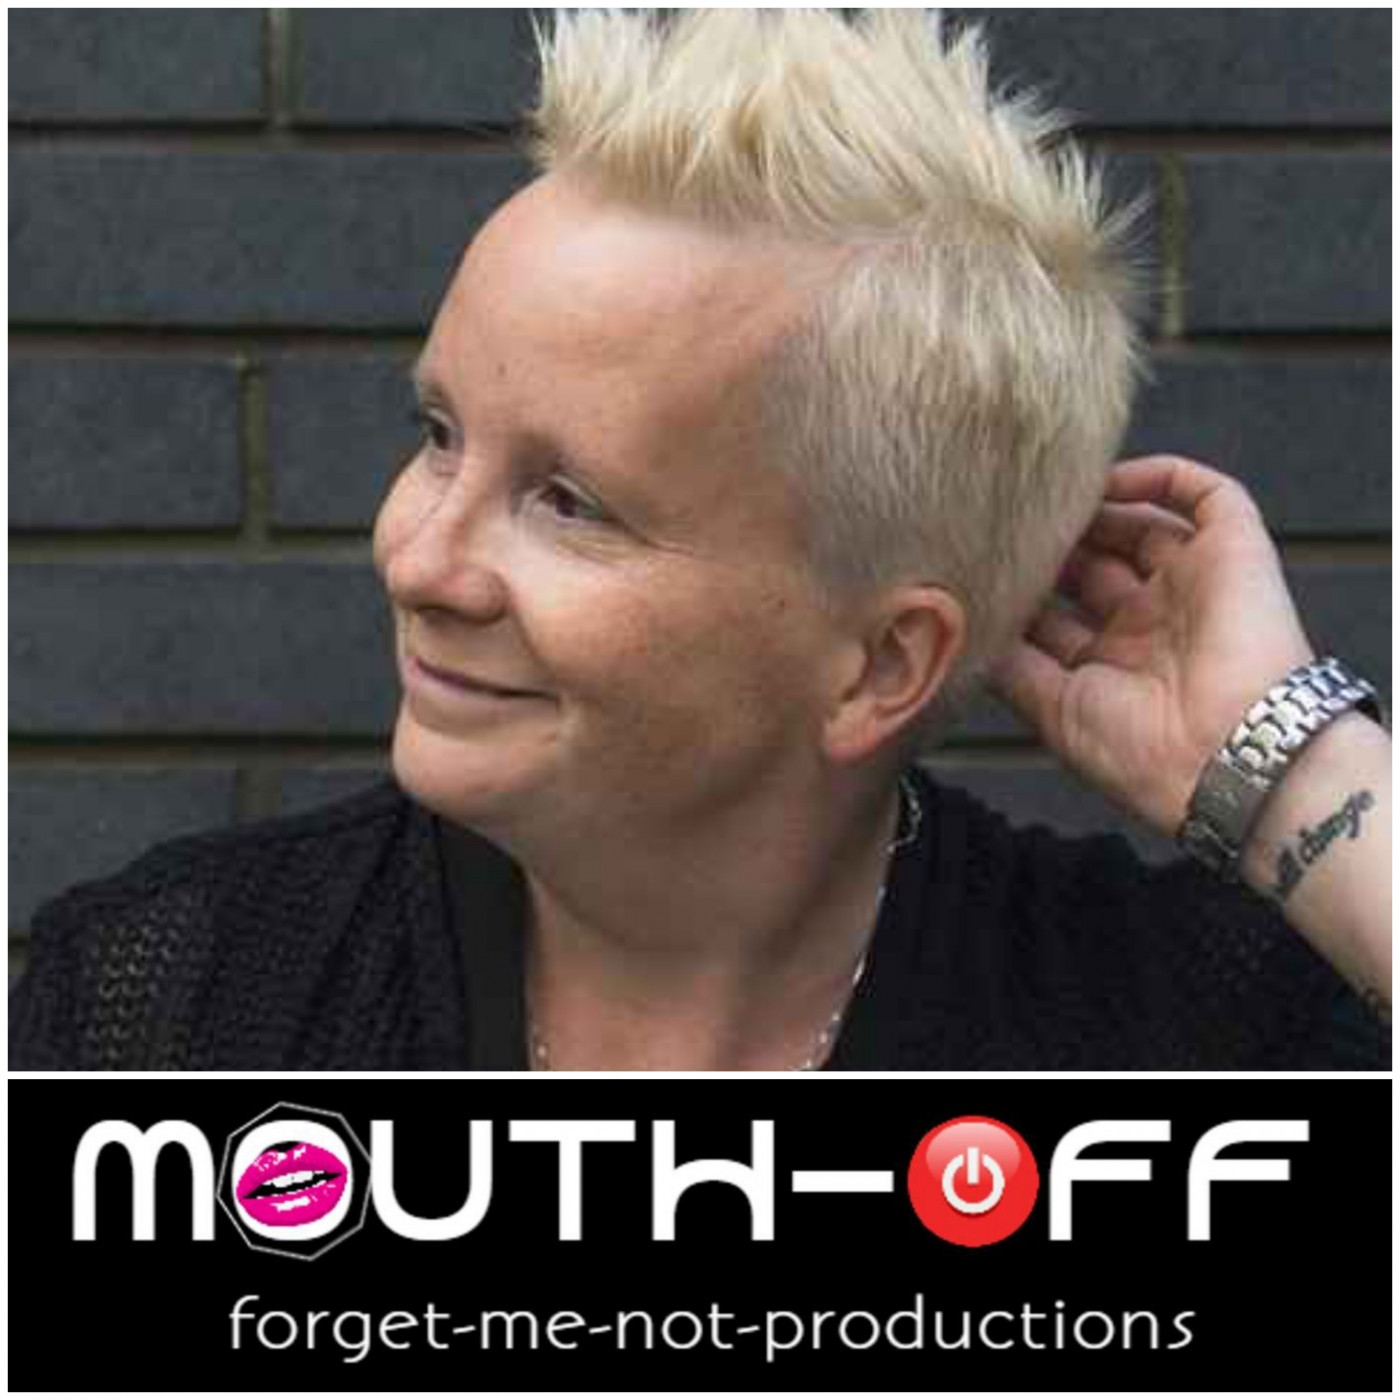 Mouth-Off Episode 11: Be More Banana